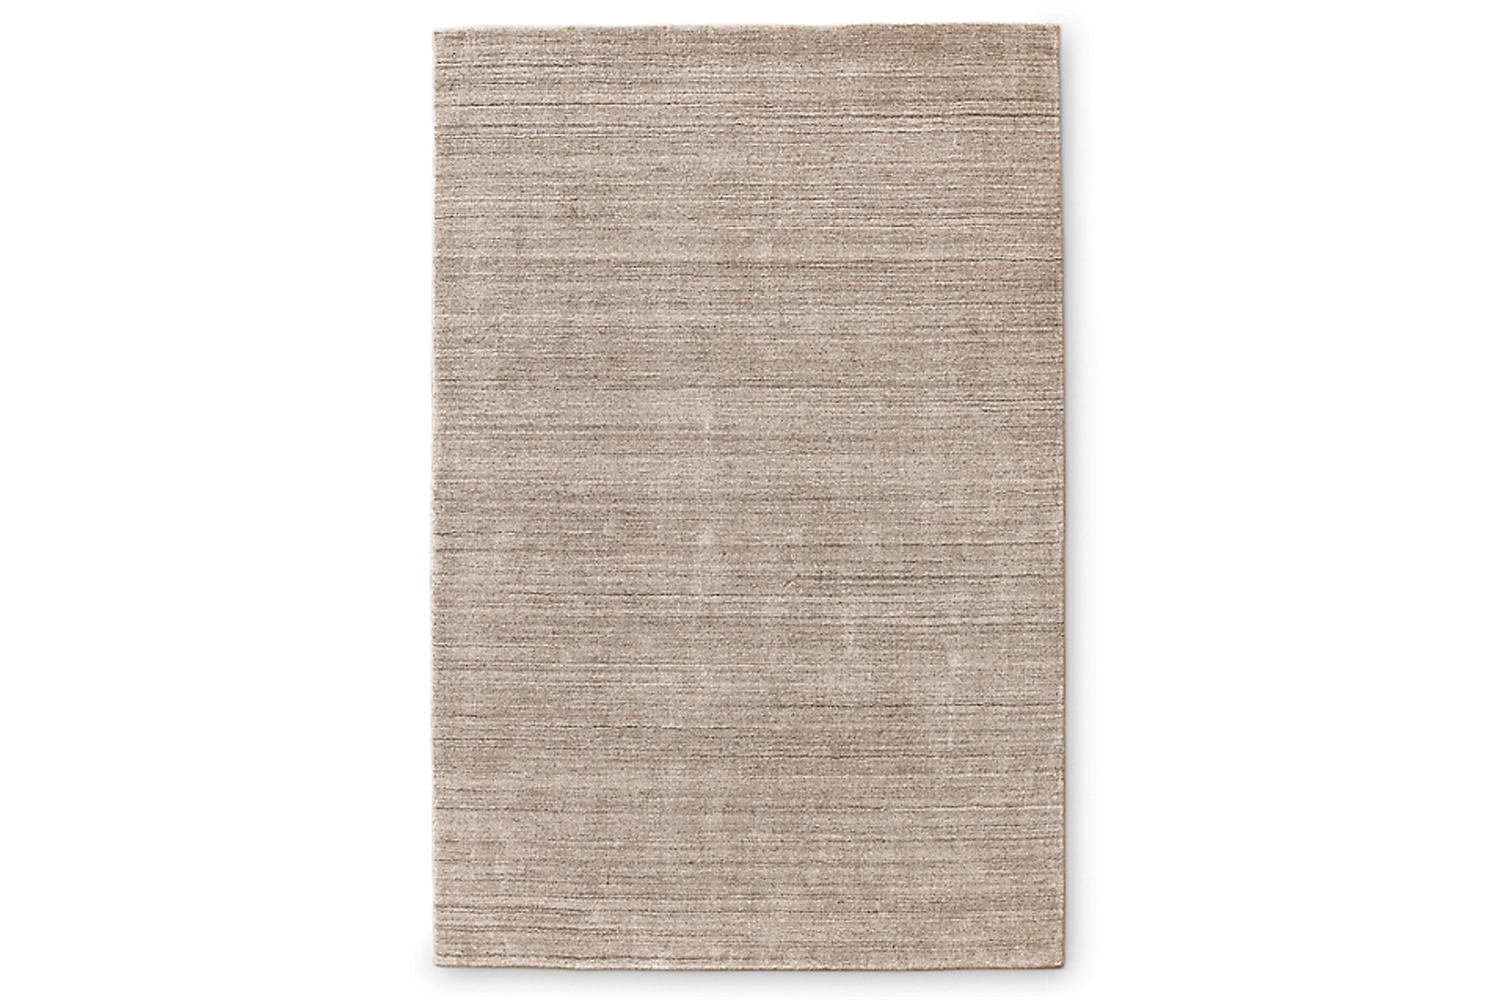 The Restoration Hardware Venise Border Handwoven Rug is $775 to $6,